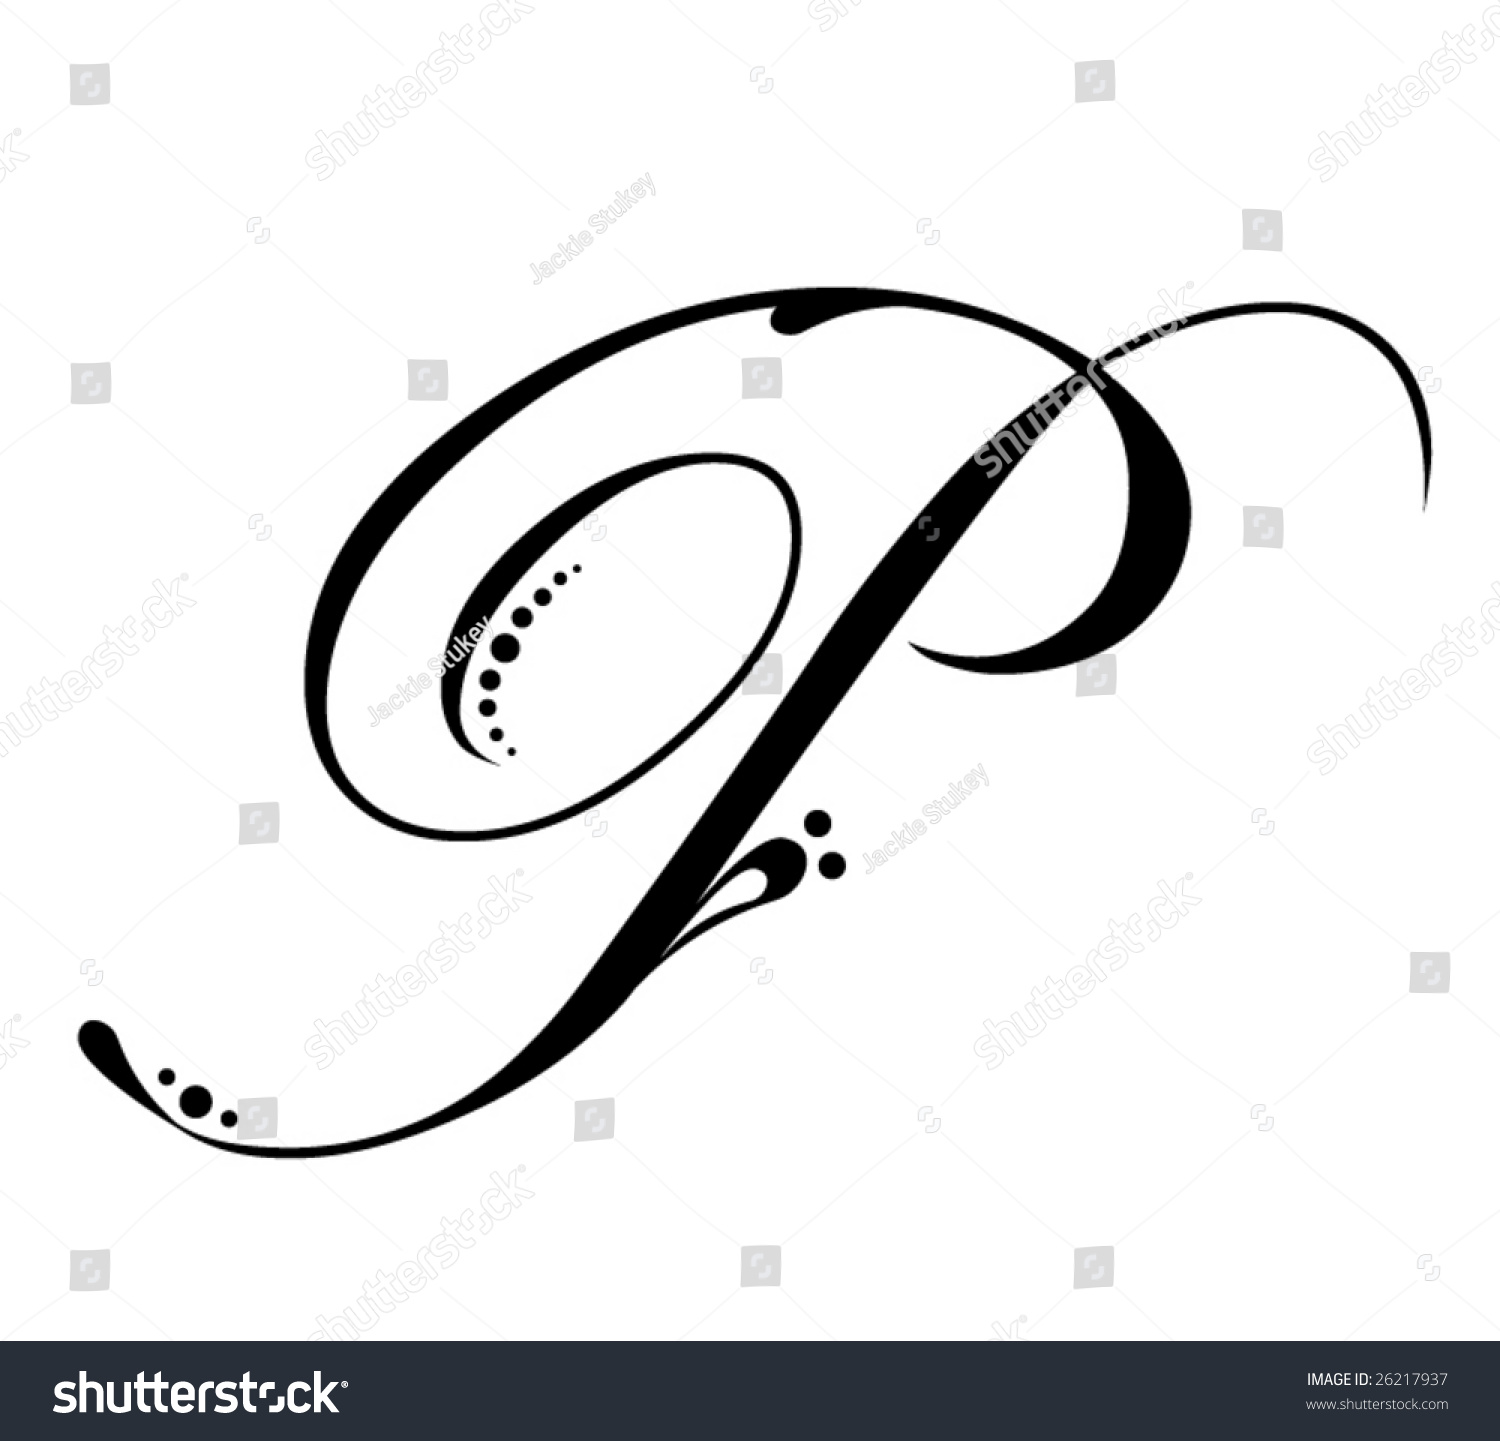 Worksheet The Letter I In Cursive the letter p in cursive laptuoso laptuoso